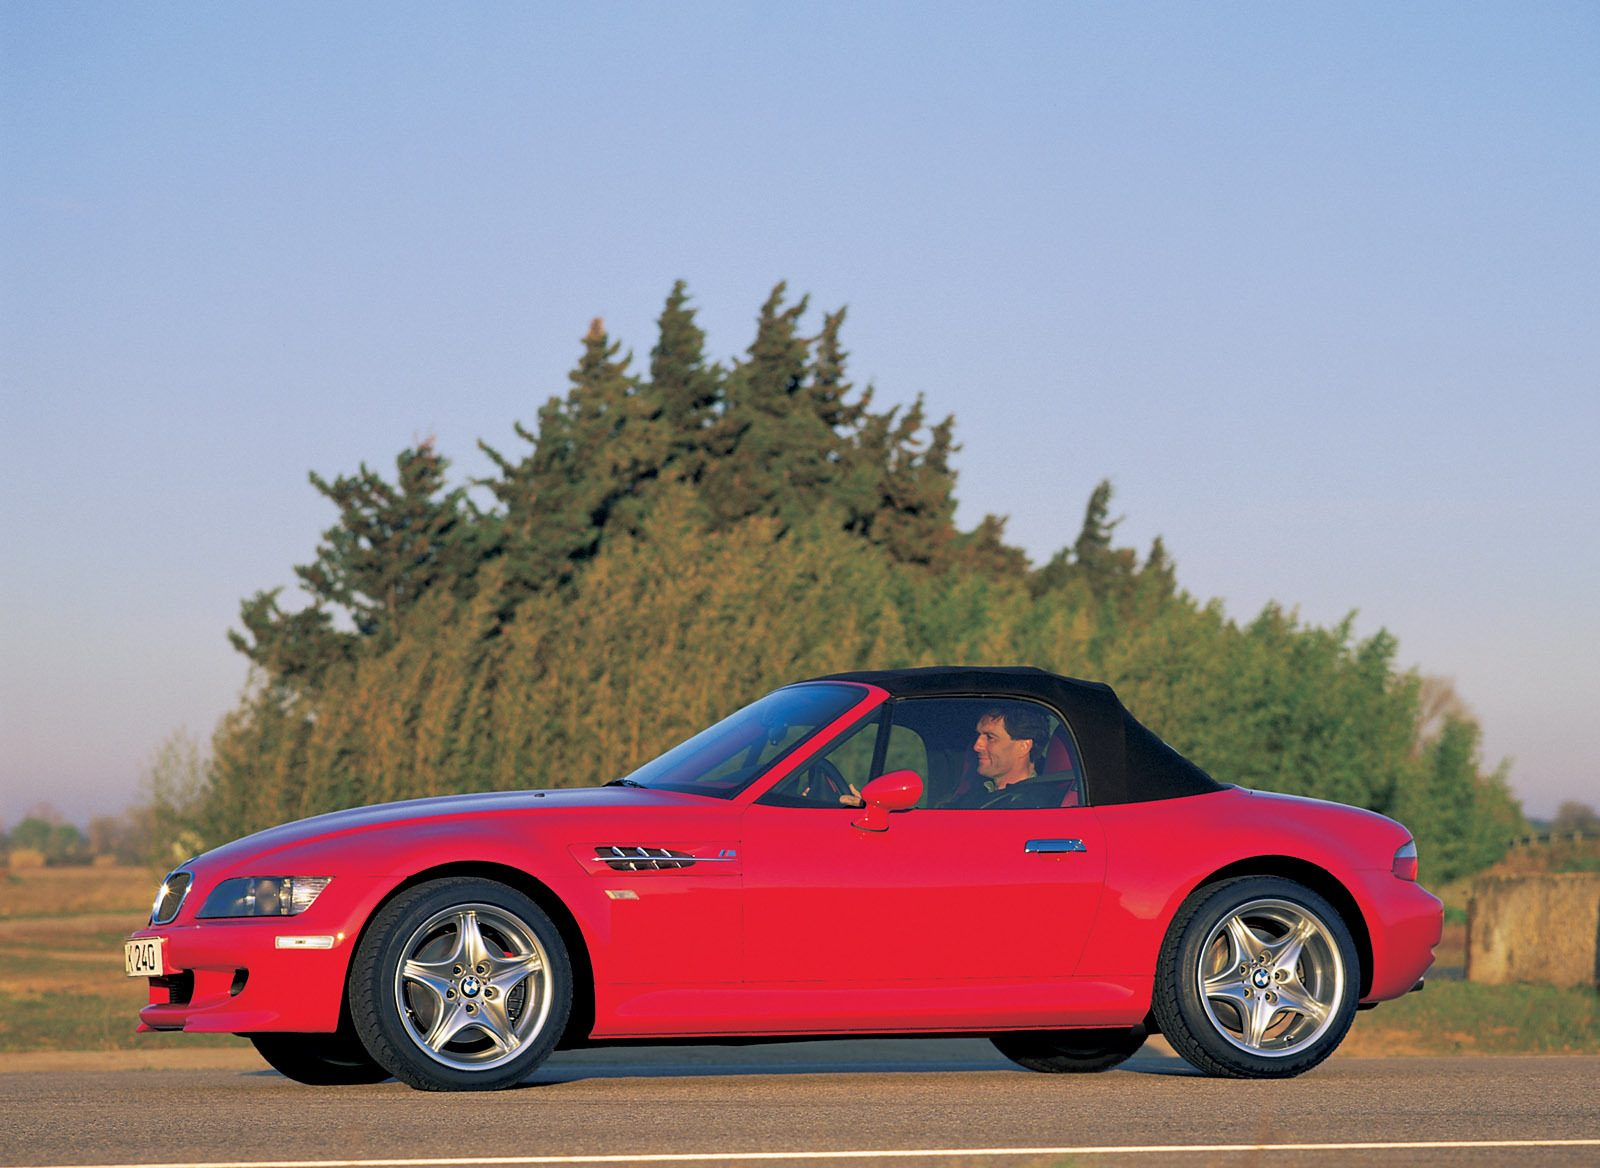 1996 BMW Z3 Roadster Wallpapers | SuperCars.net - Today's ...